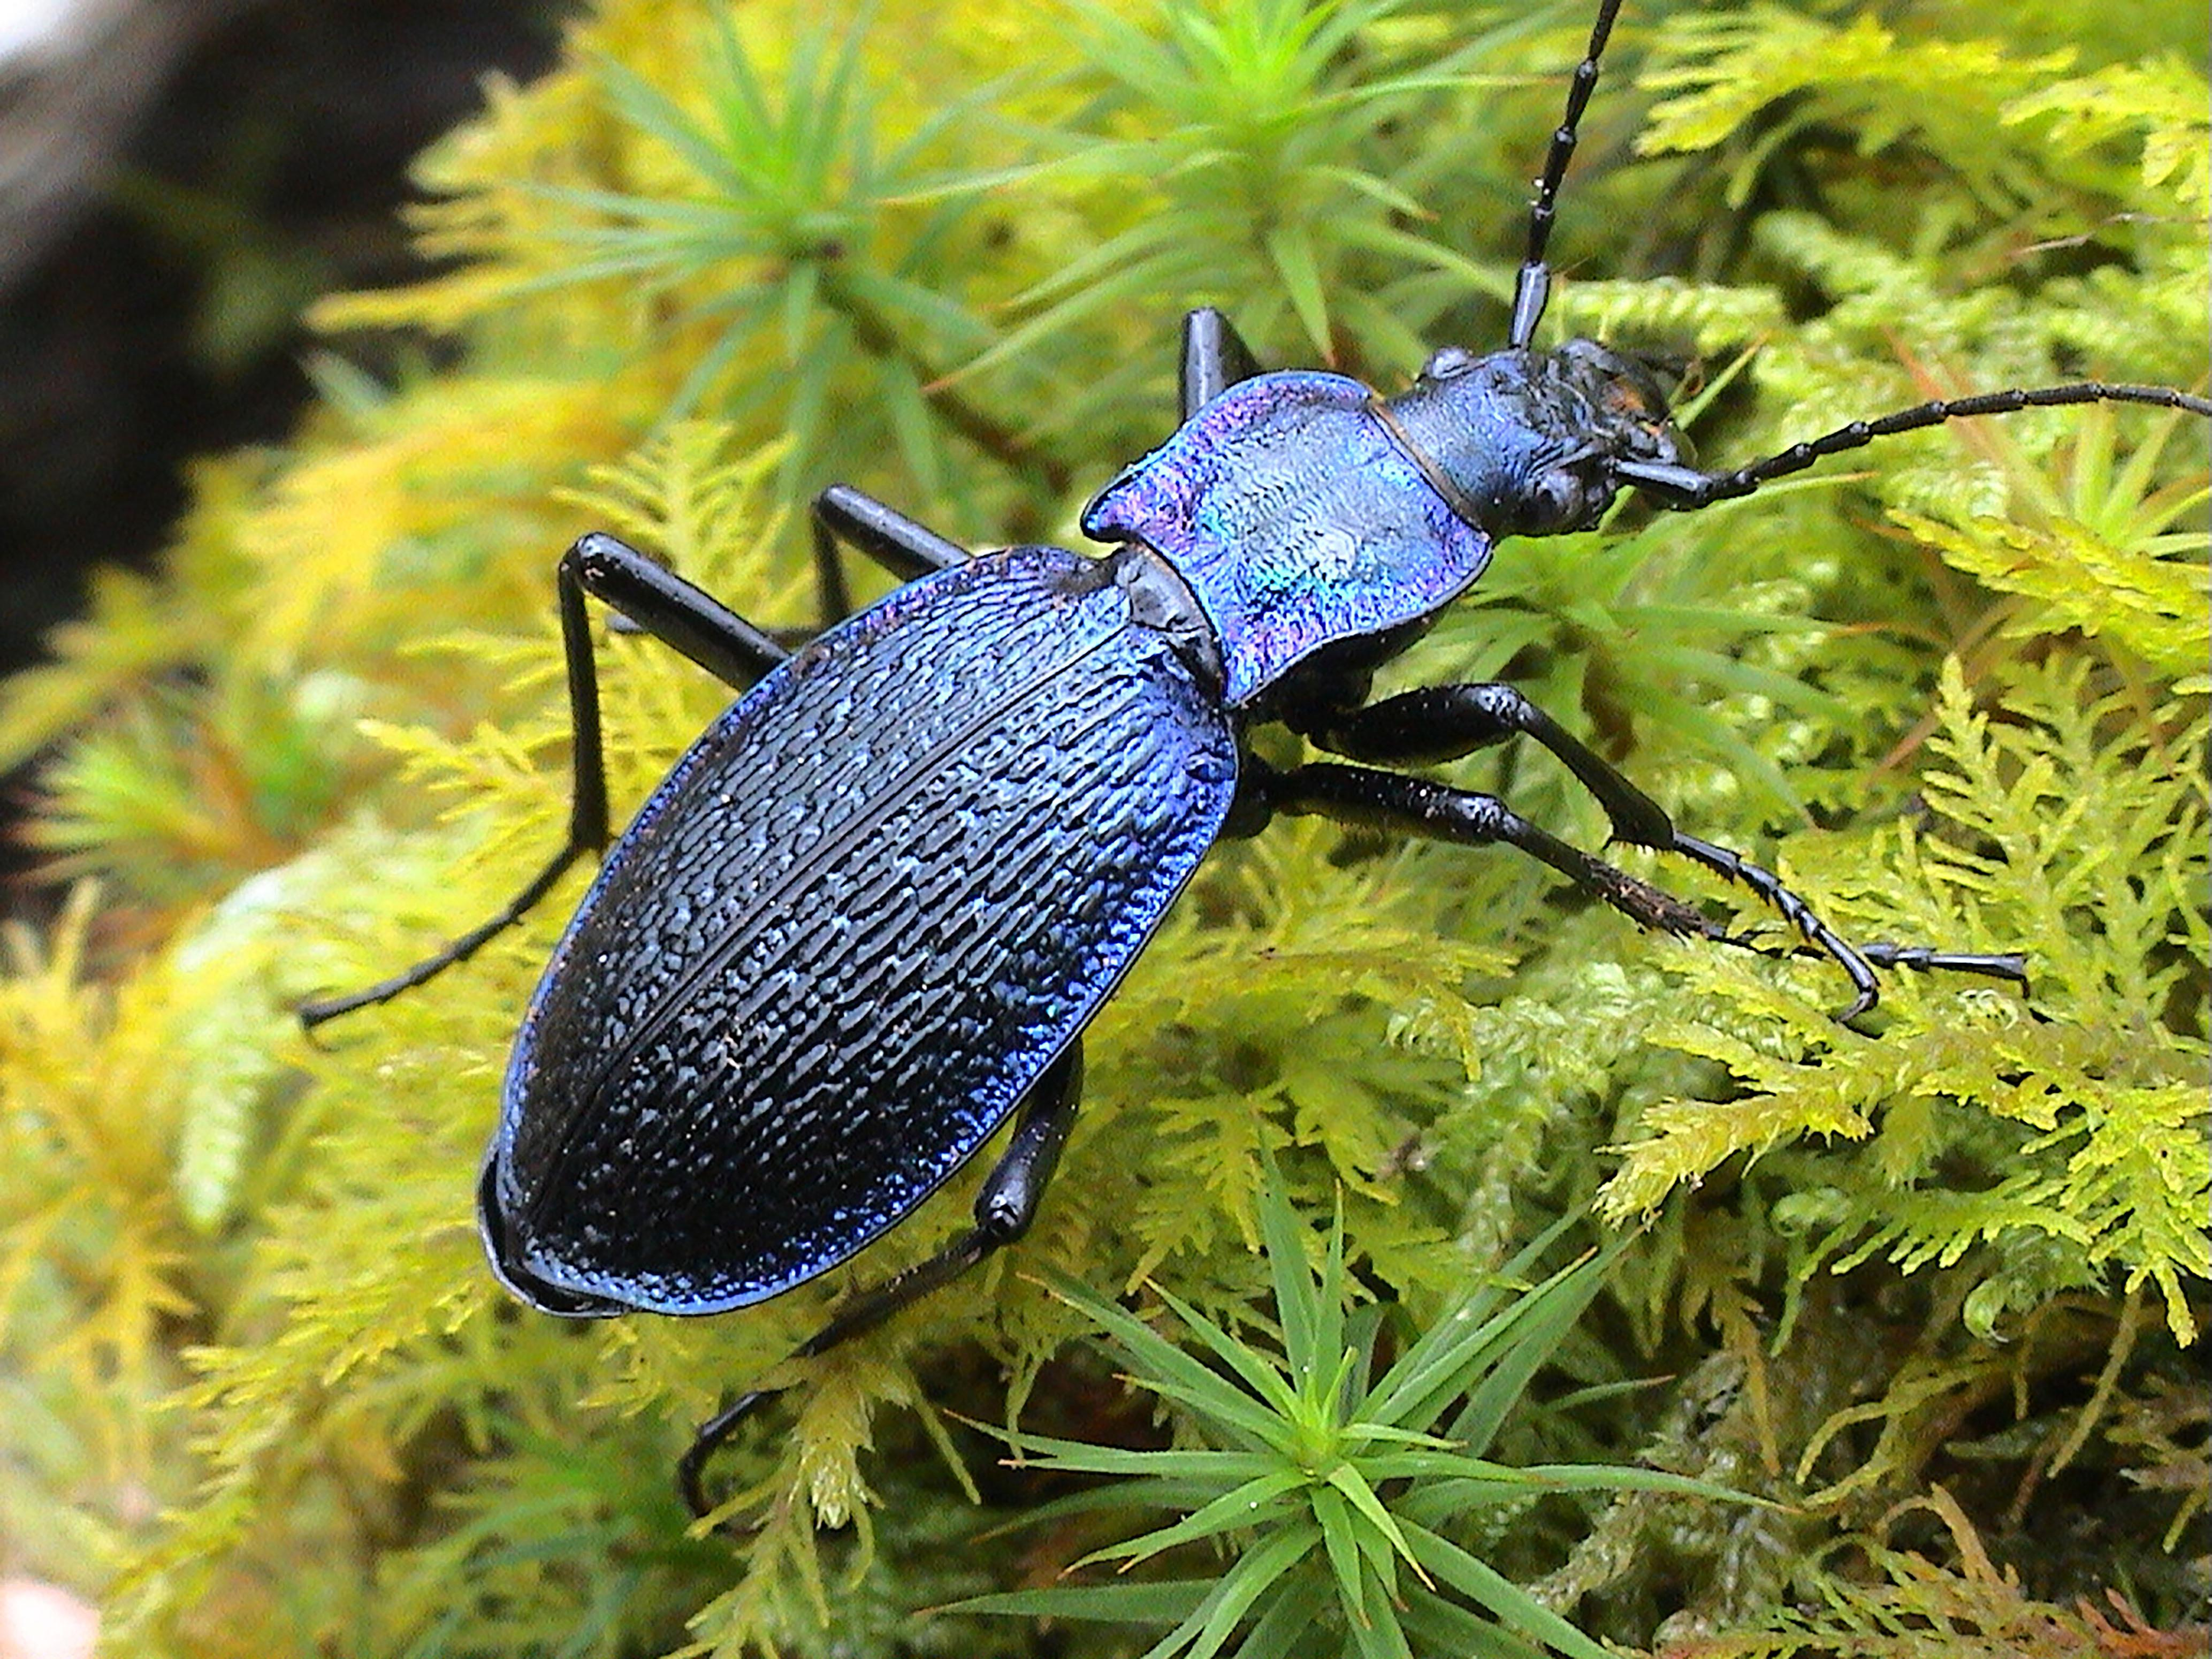 Country diary: best look up if you want to see a blue ground beetle